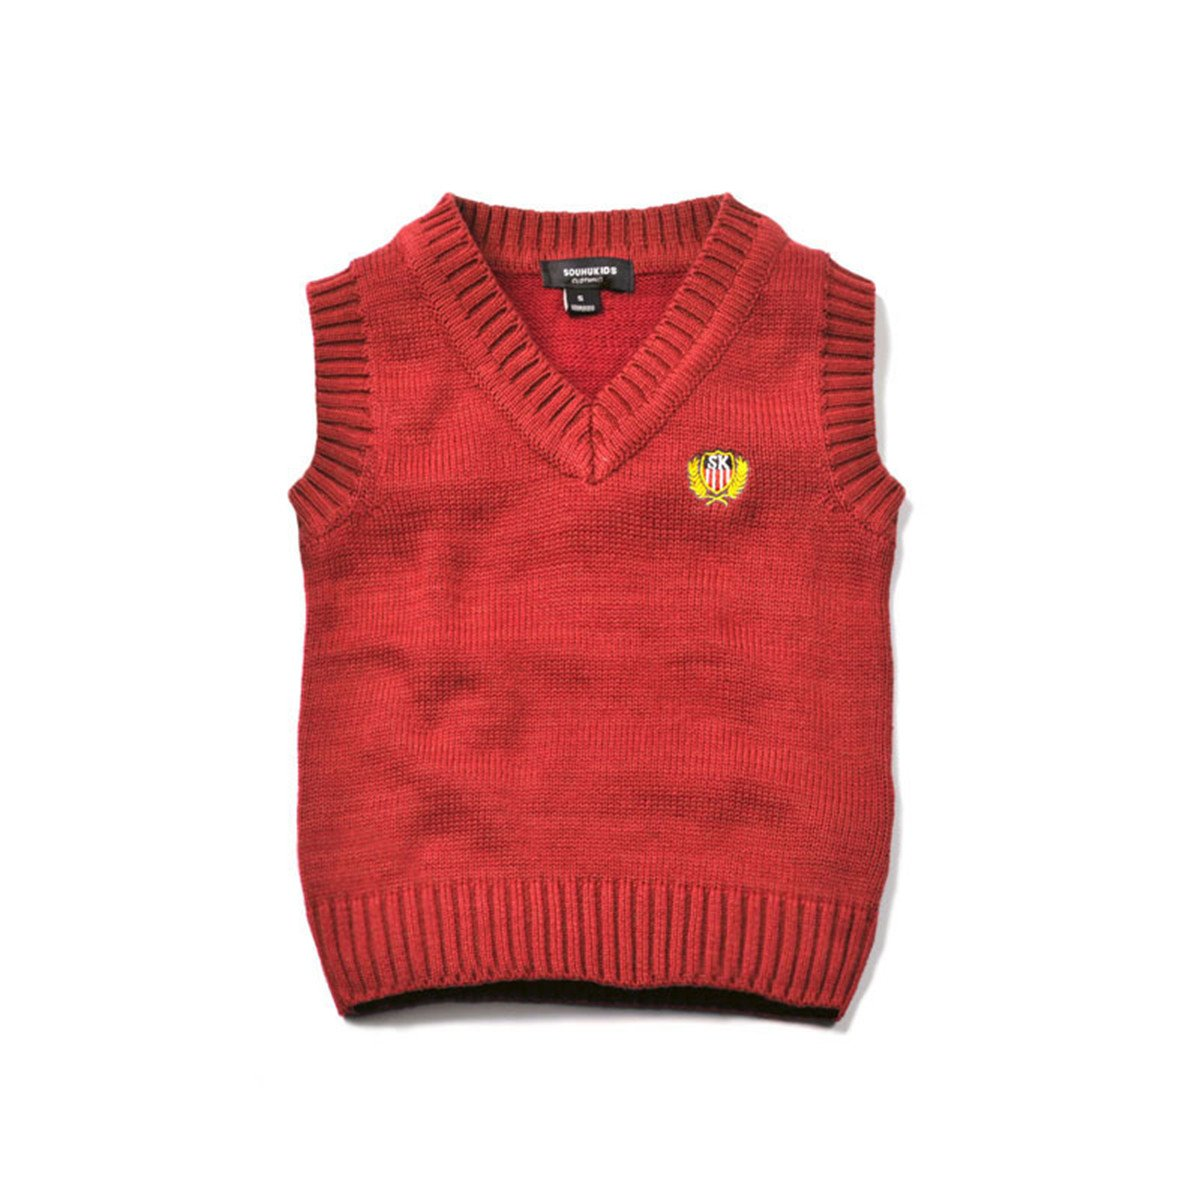 JELEUON Baby Boys Girls Toddler V-Neck Solid Color Pullover Sweater Students Vest